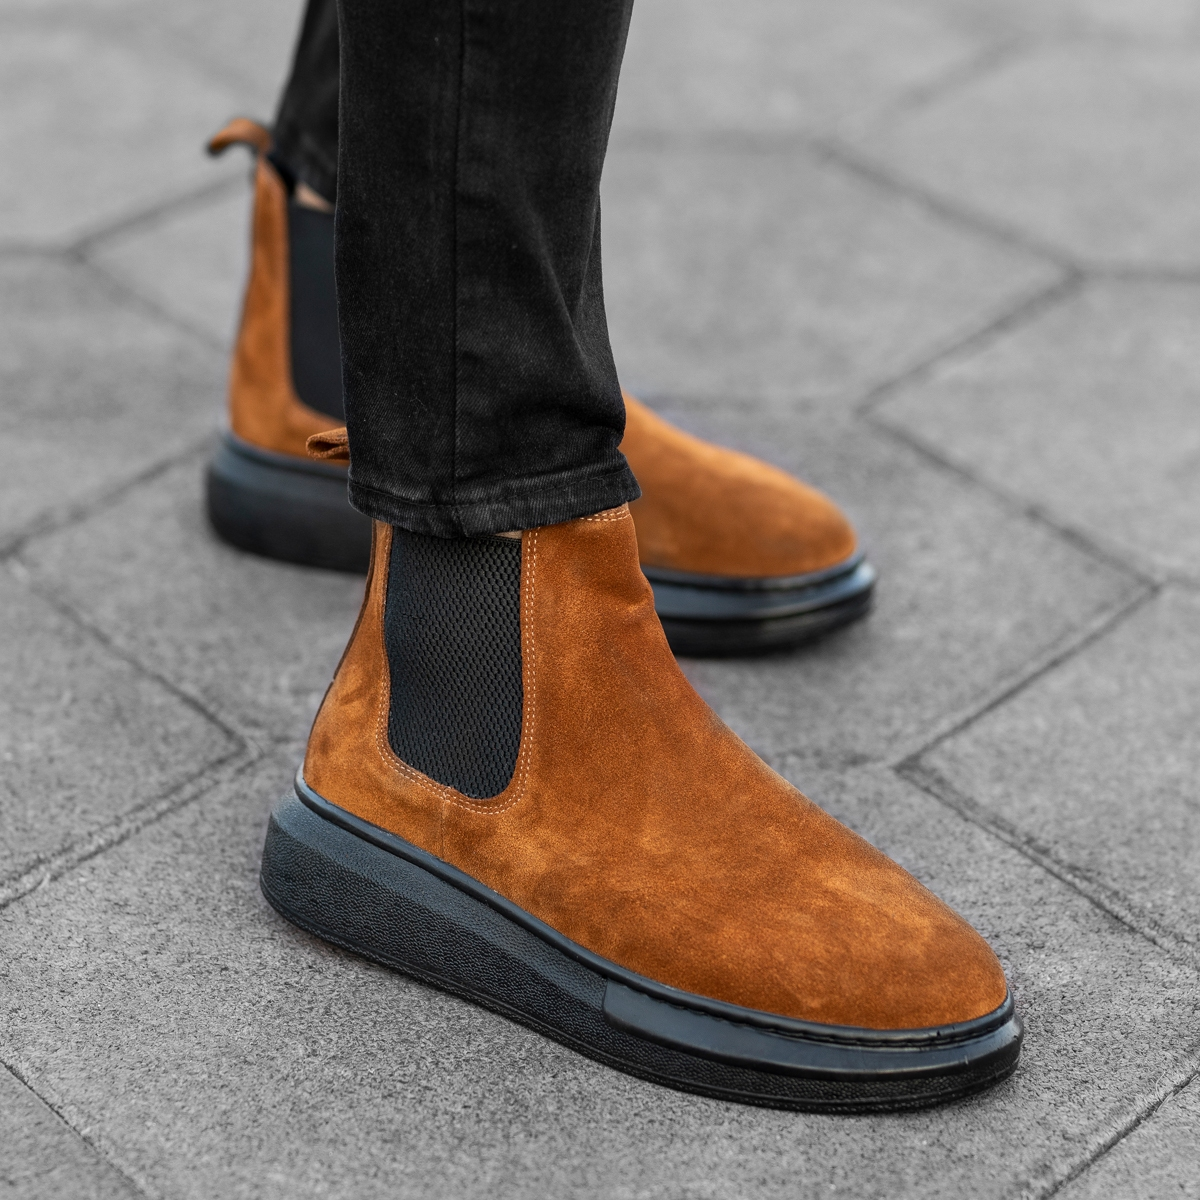 Genuine-Suede Hype Sole Chelsea Boots